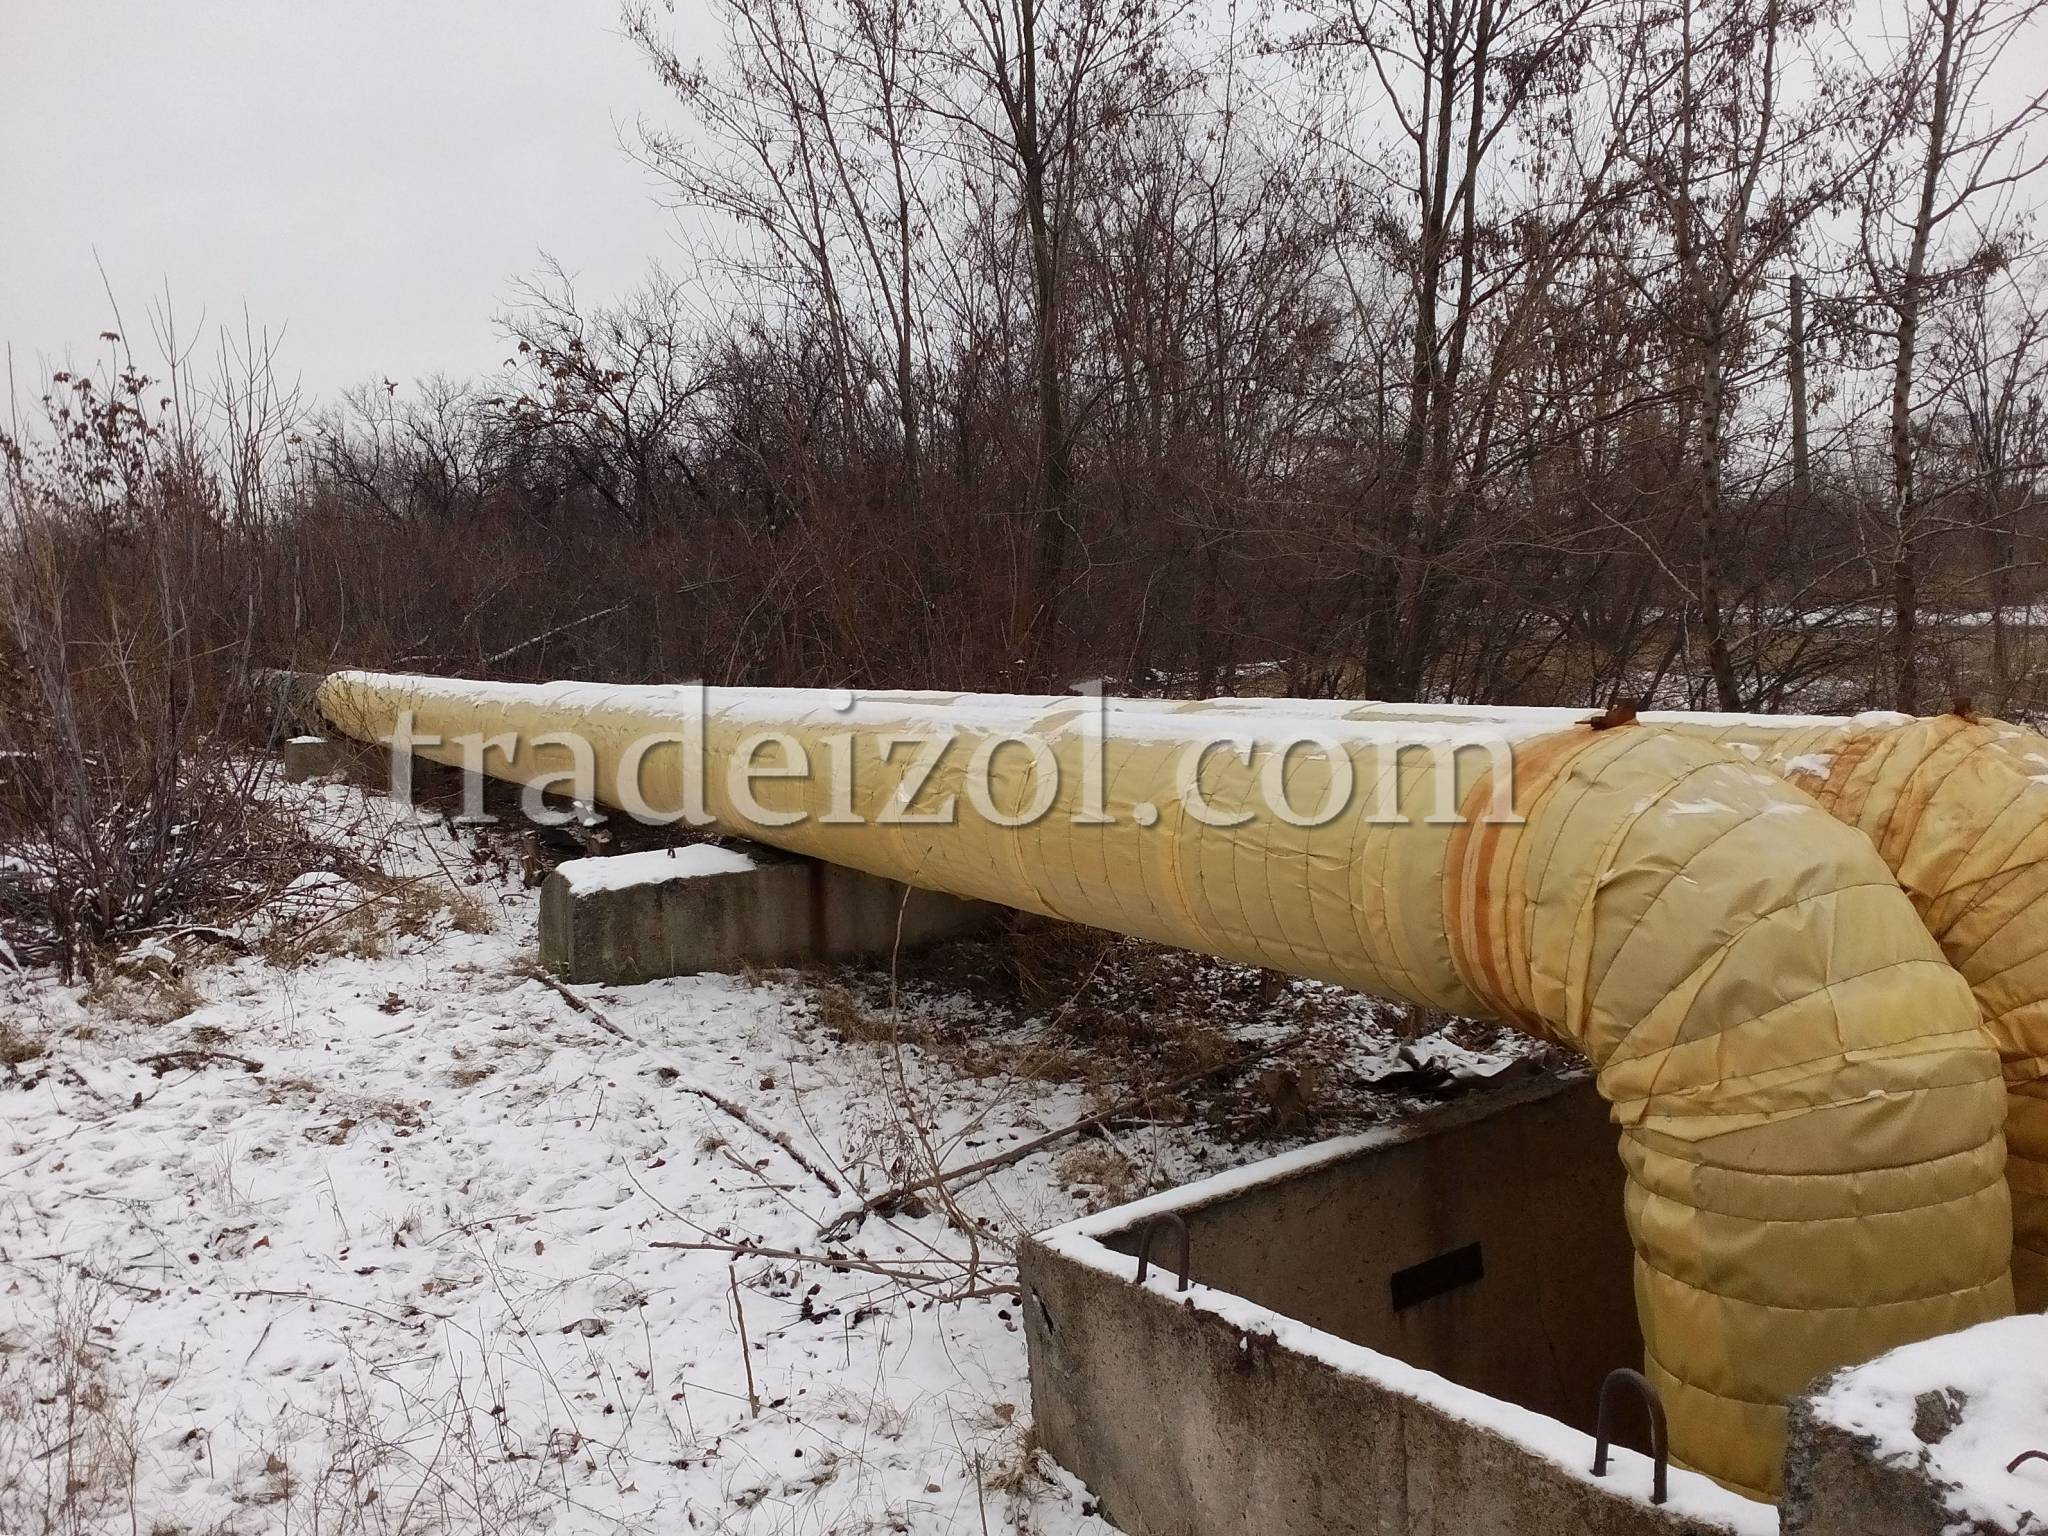 Pipe insulation & Tradeizol - Insulation for pipes and technical equipment.